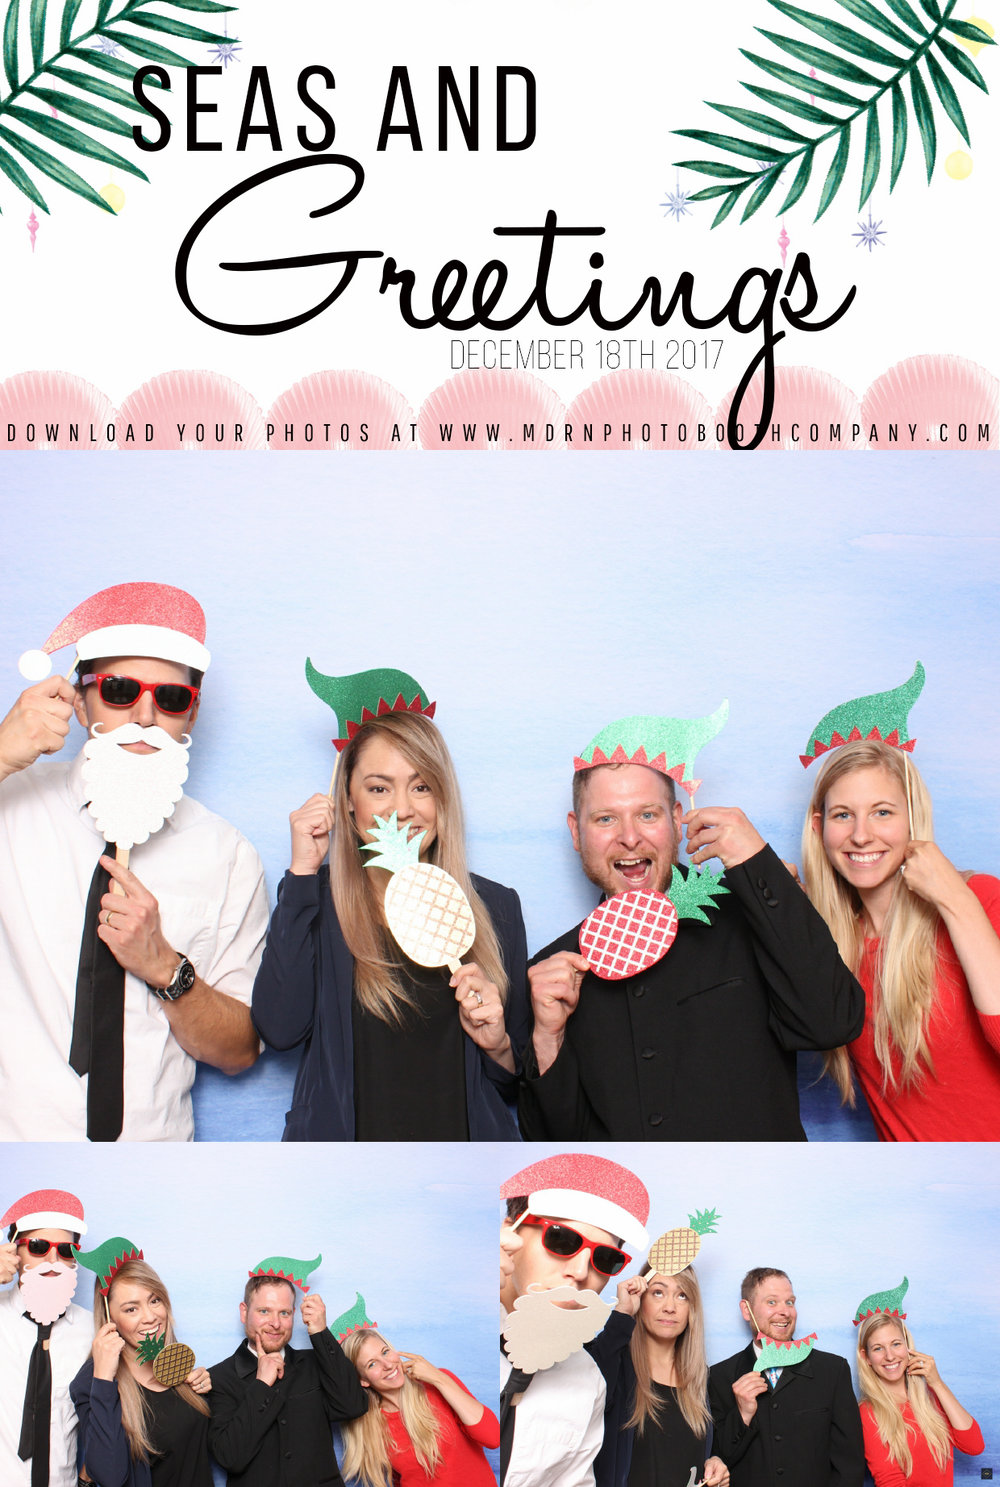 MDRN-PHOTOBOOTH-2017-CHRISTMAS-STYLED-SHOOT-55767.jpg